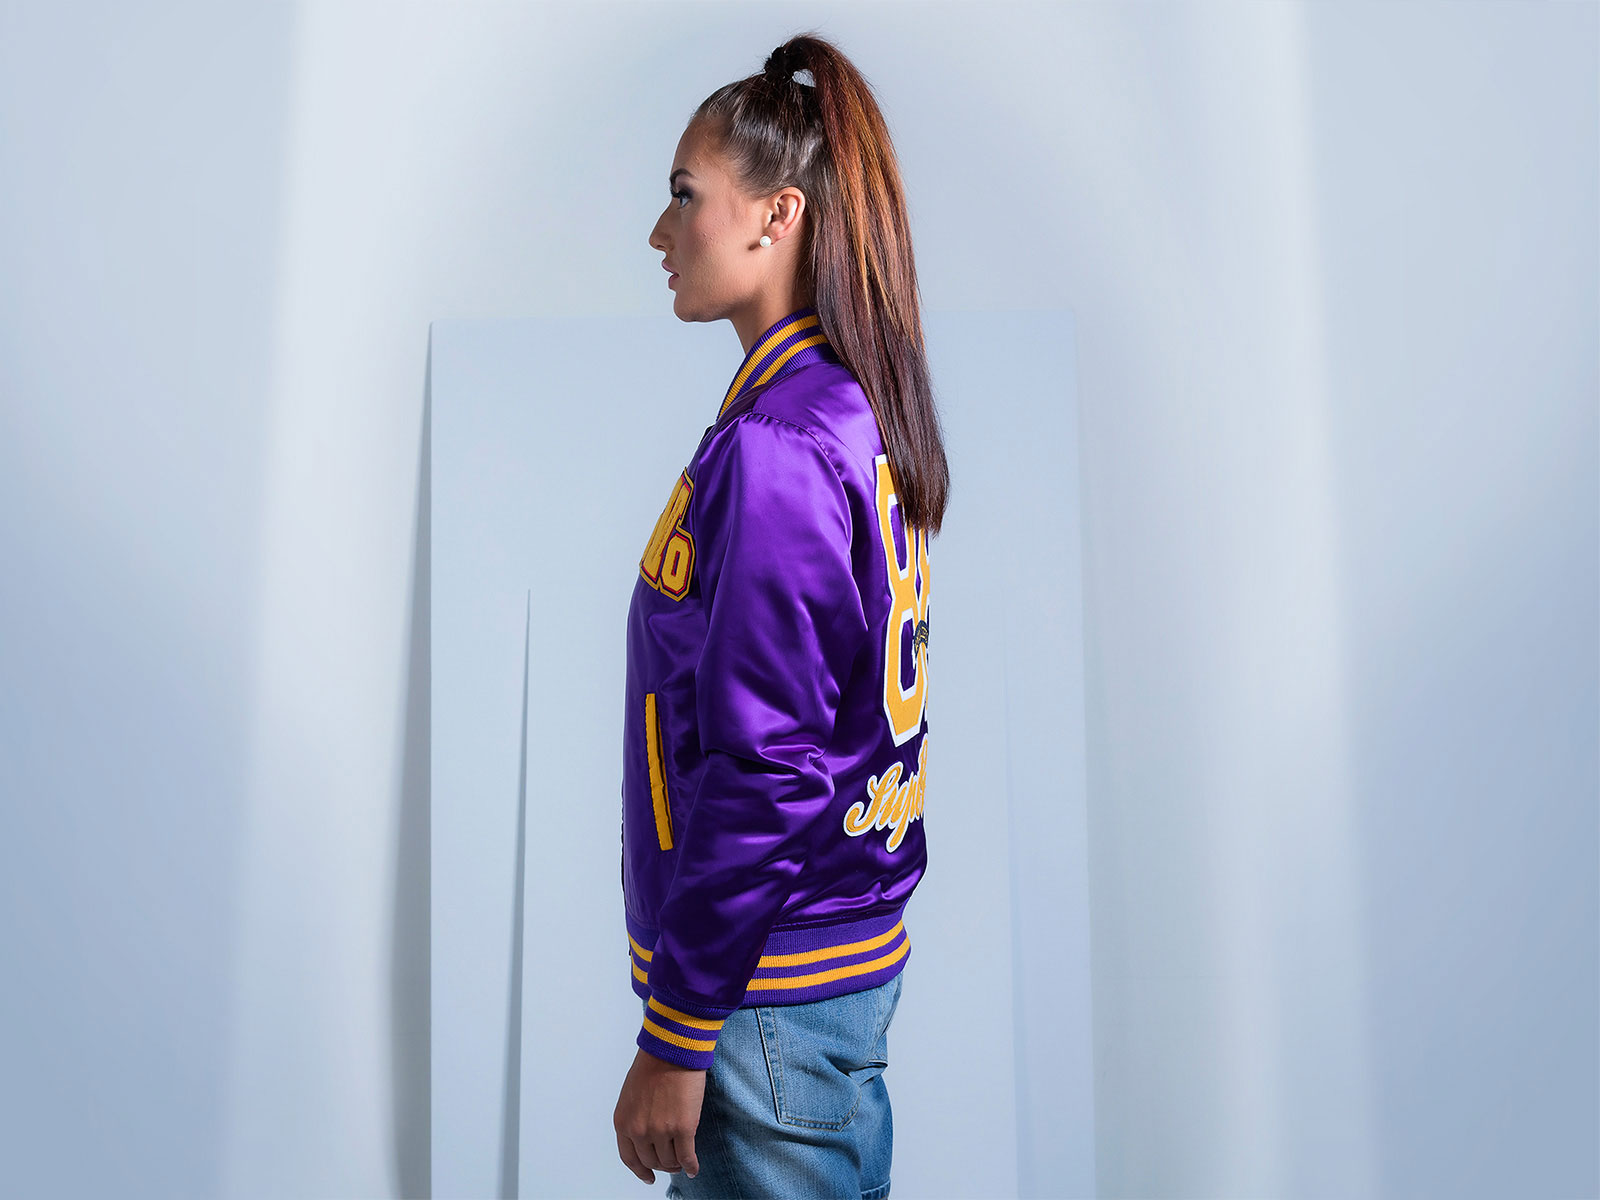 Custom Satin Letterman Jacket for Women